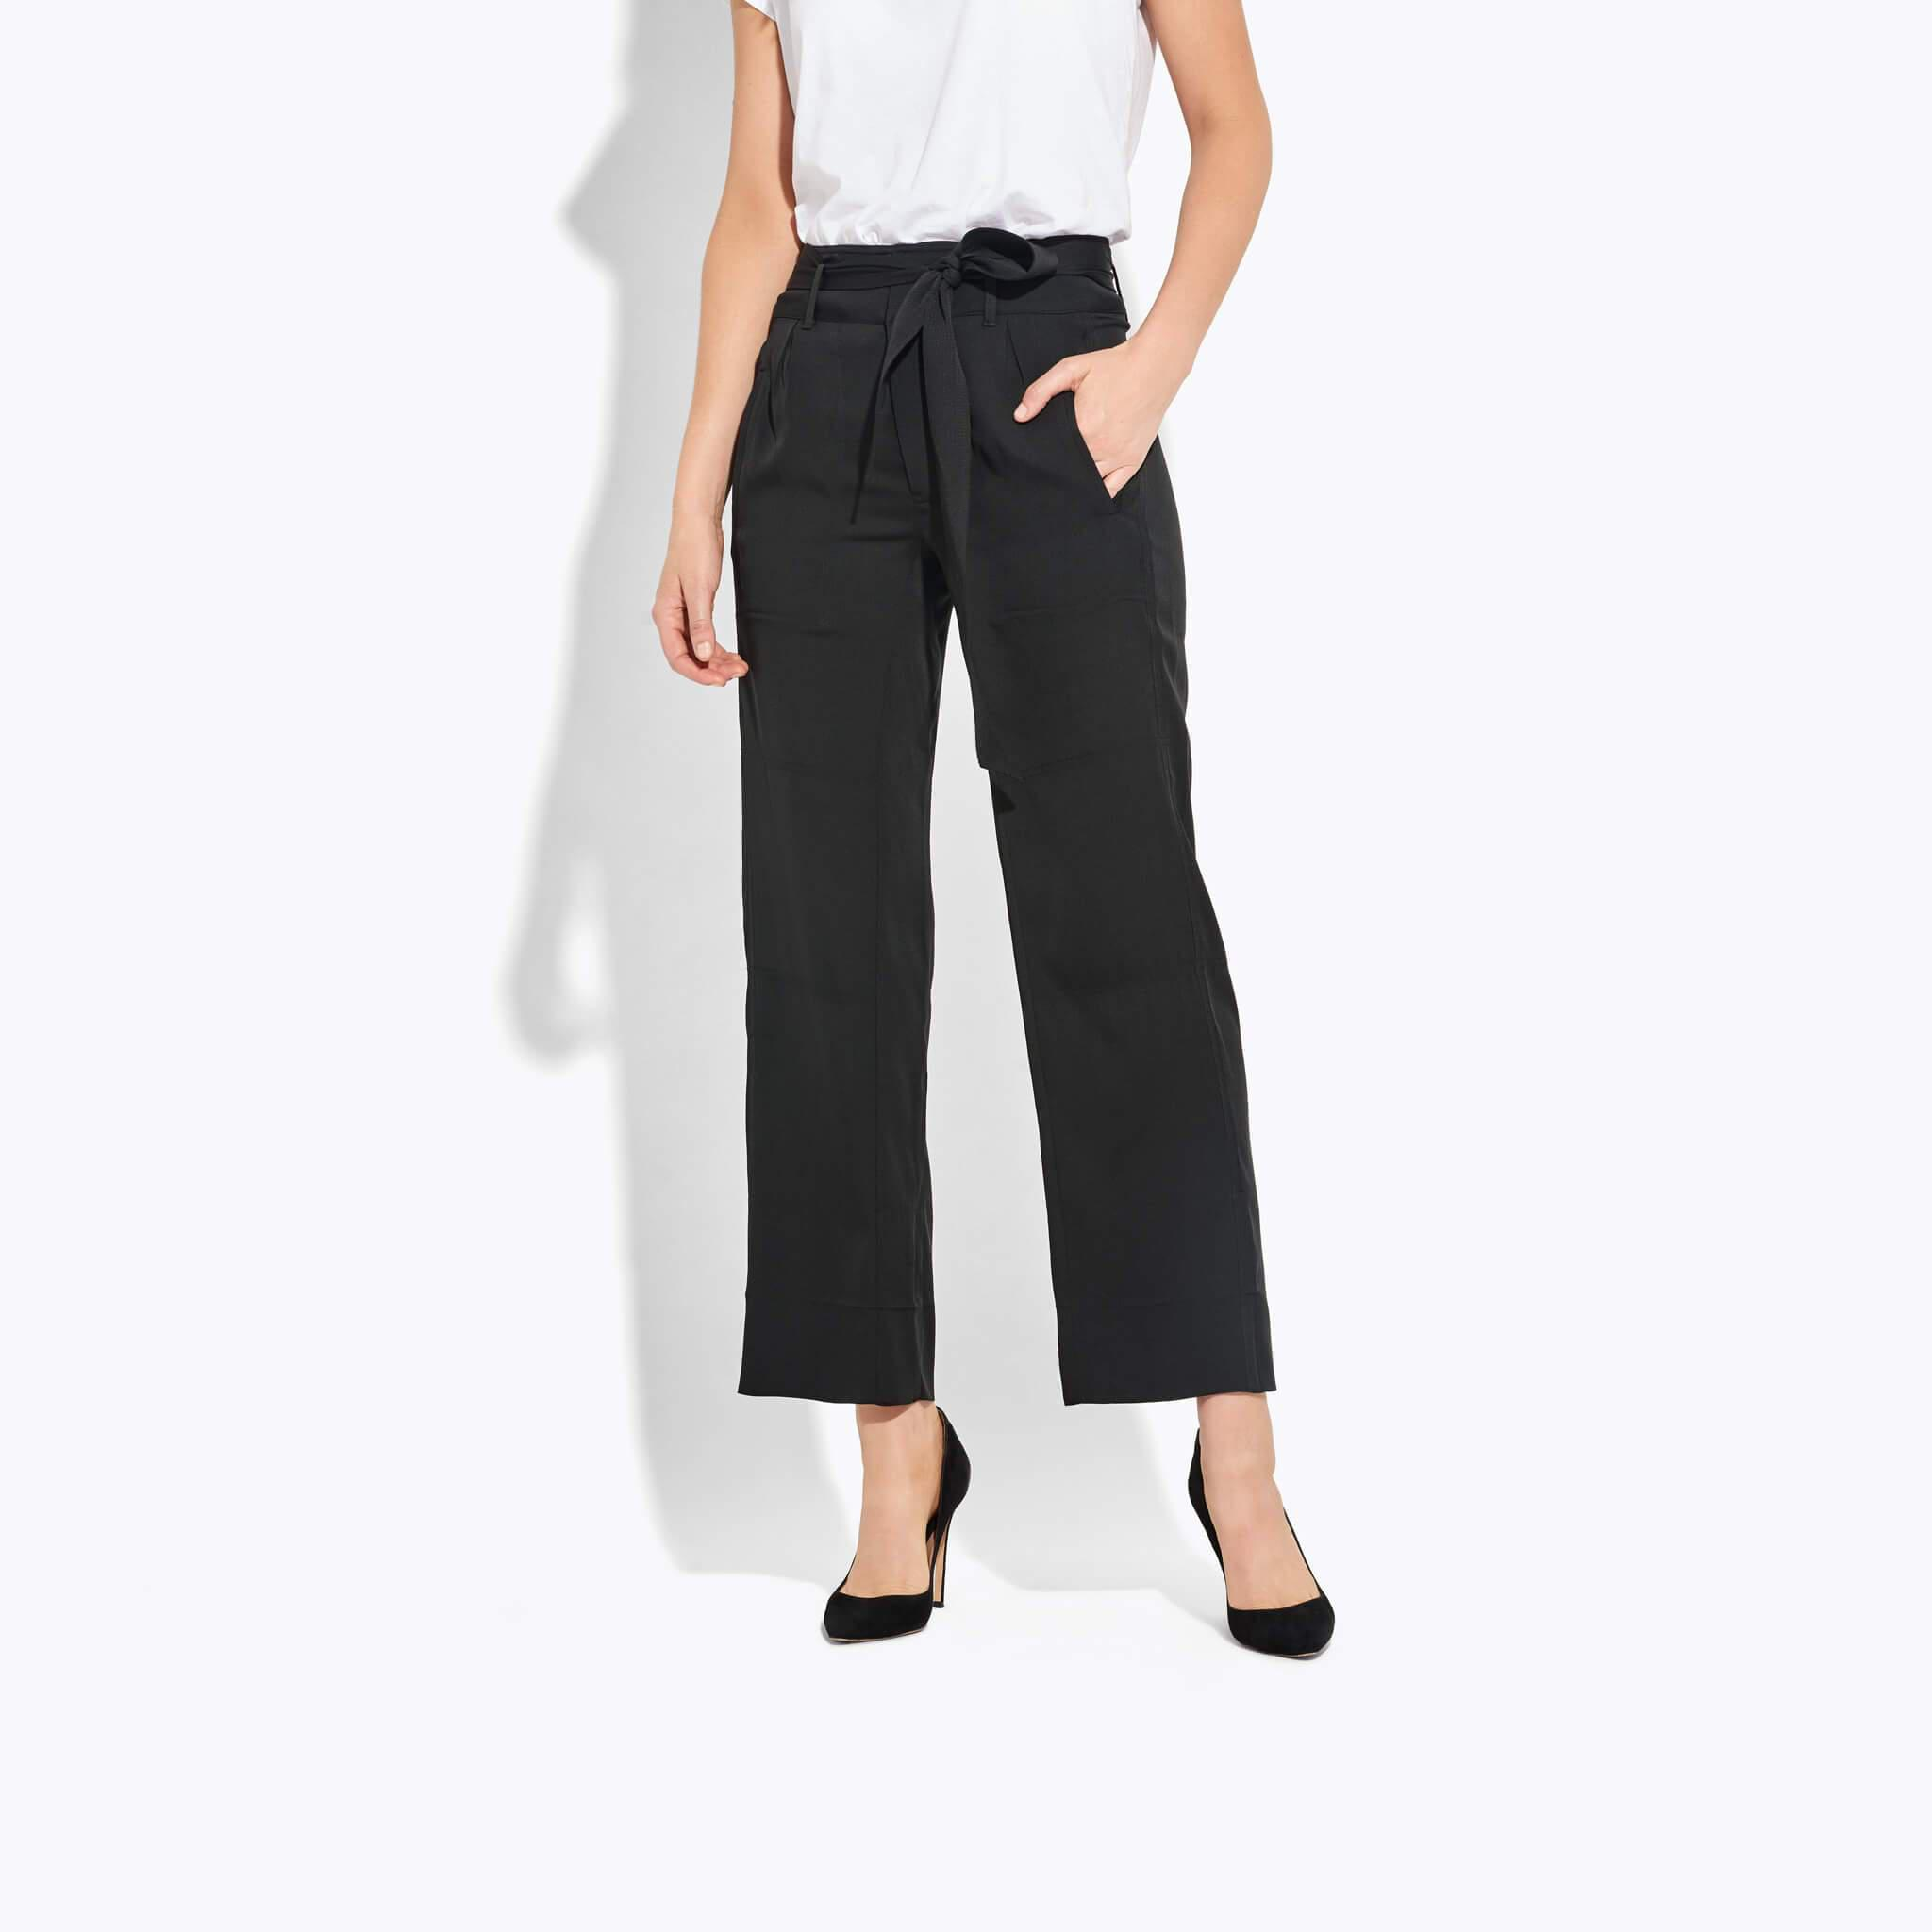 The Mirage Pant 1